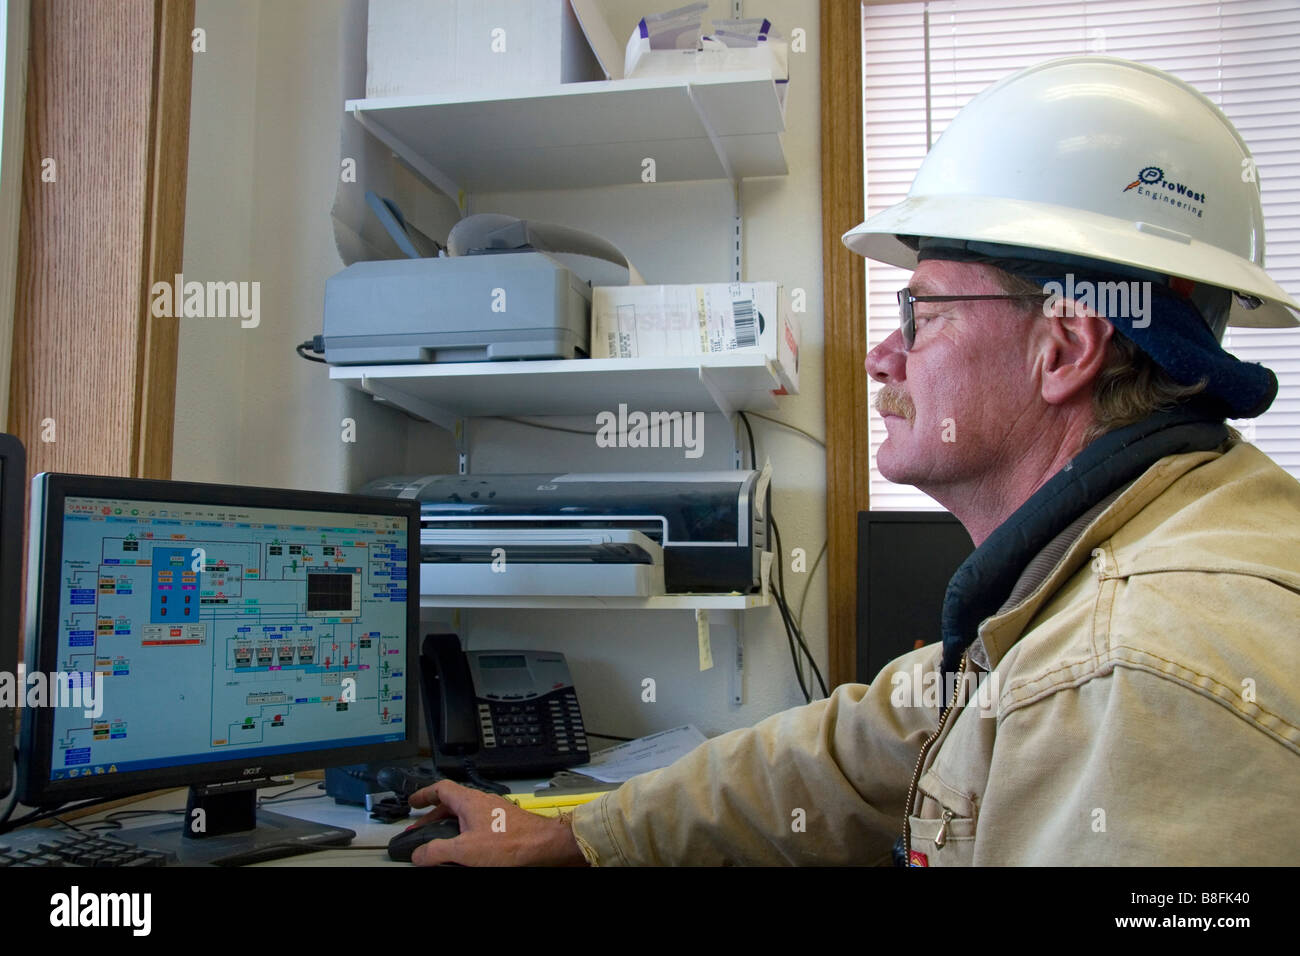 Operator using computers to monitor the system of a geothermal power plant in Malta Idaho USA - Stock Image